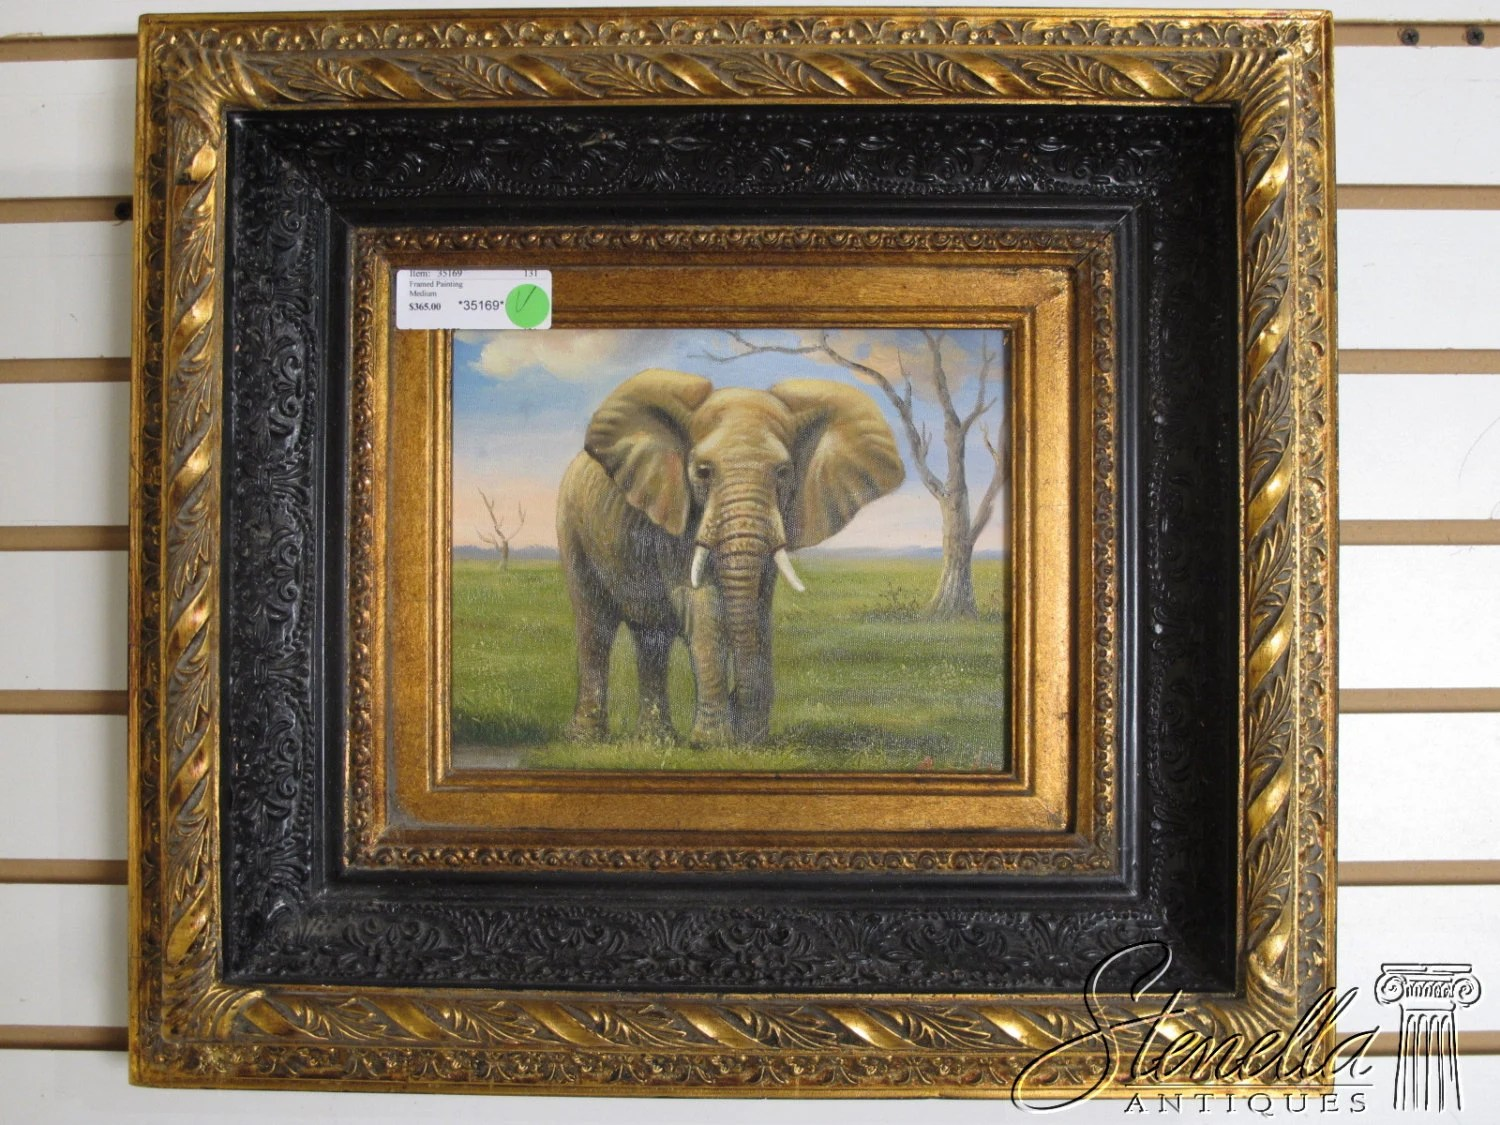 V35169E: Black And Gold Framed Oil Painting On Canvas Old